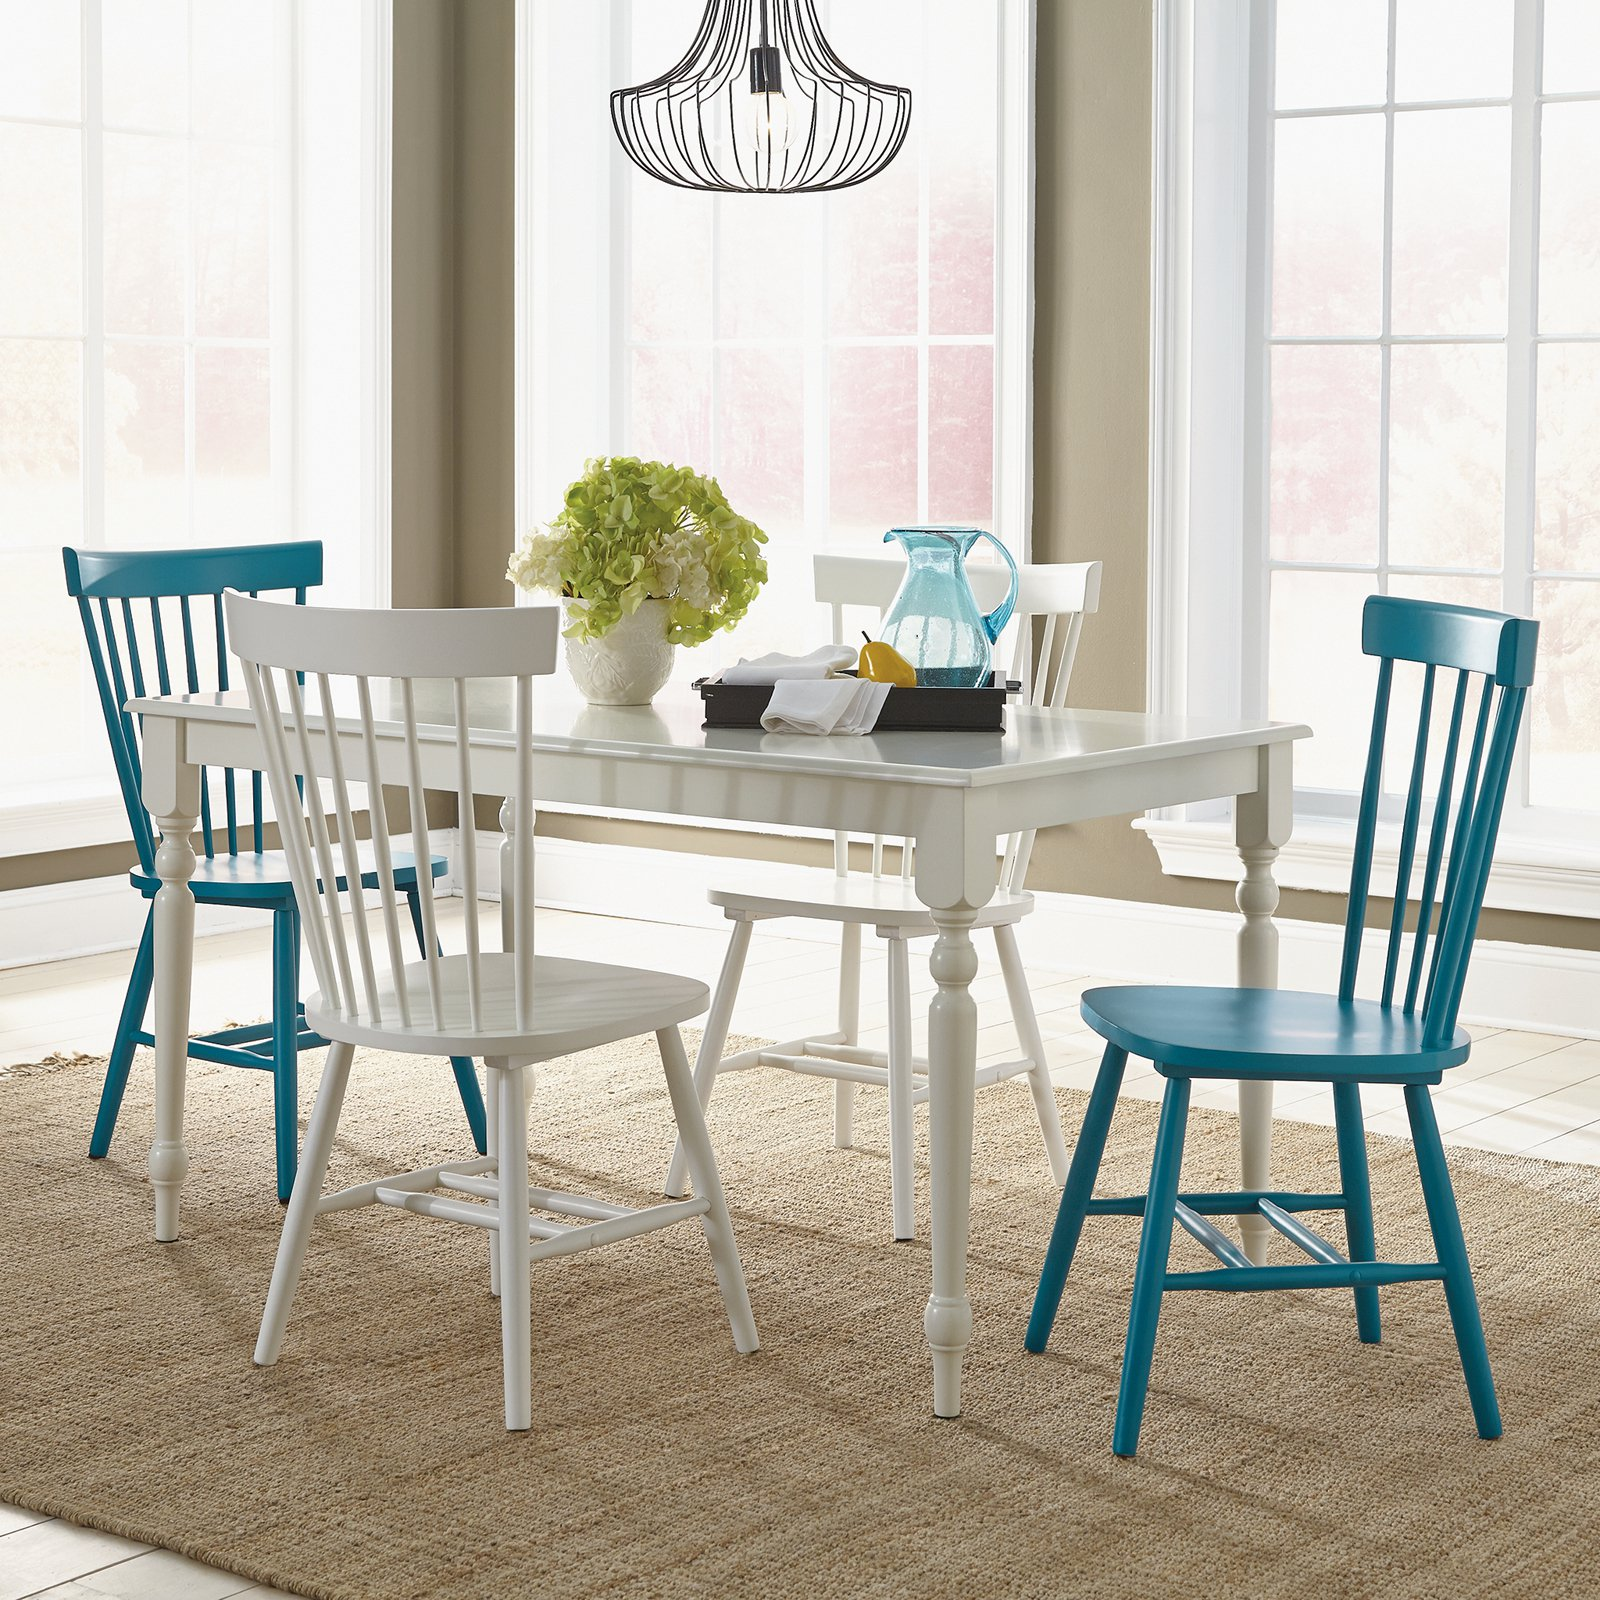 Superbe Sauder Cottage Road 5 Piece Dining Table Set   Walmart.com